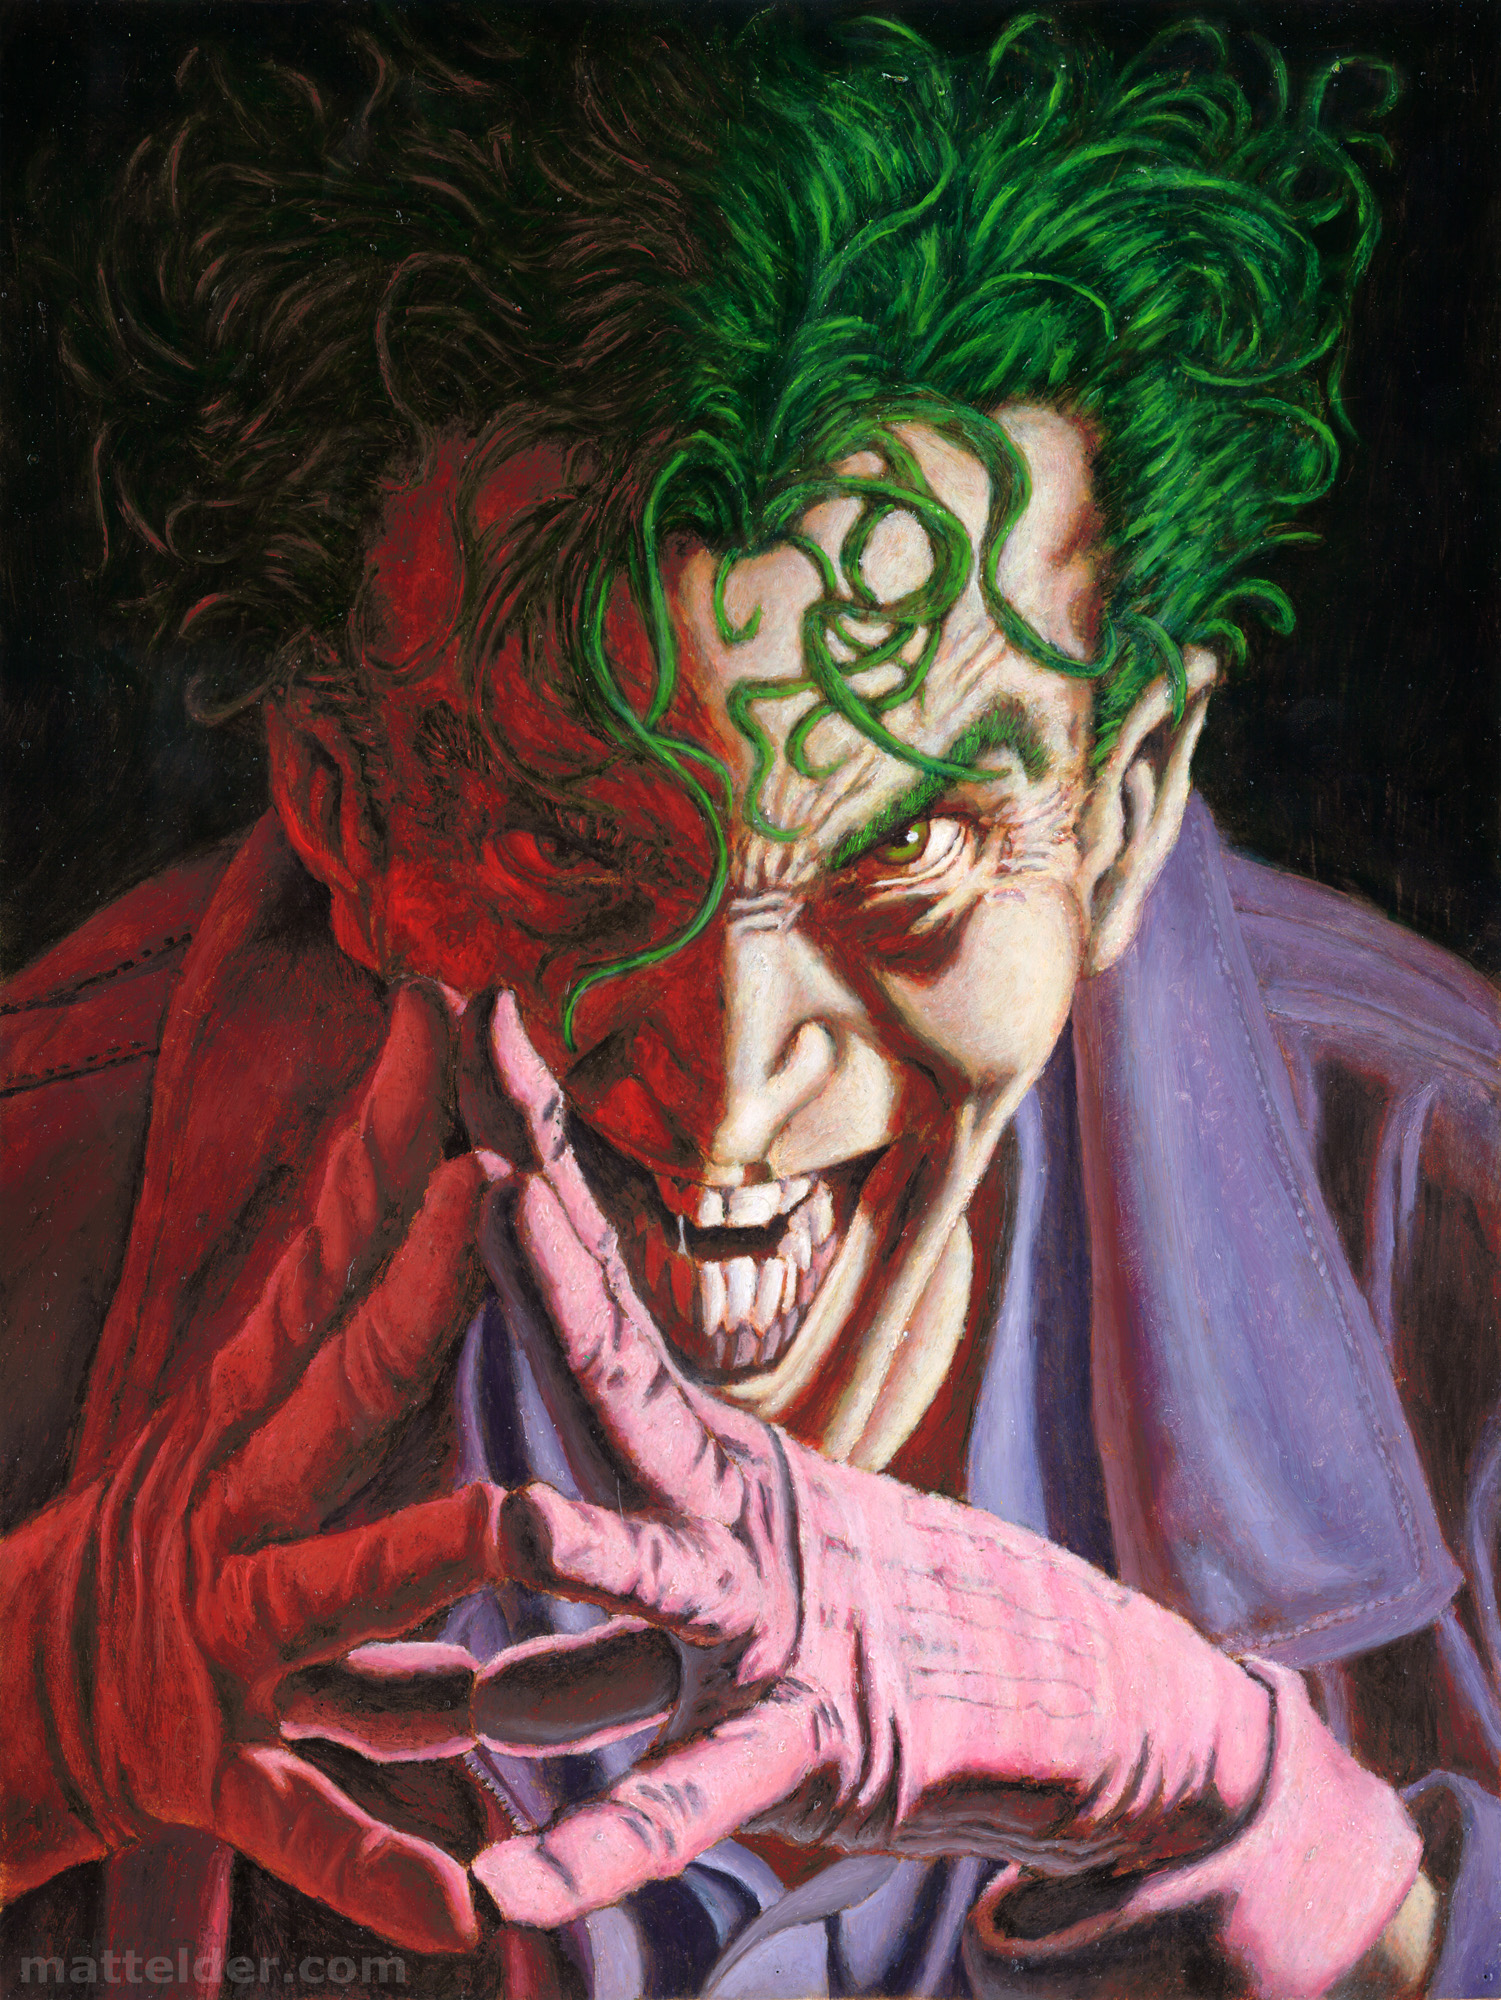 Joker Pin-up